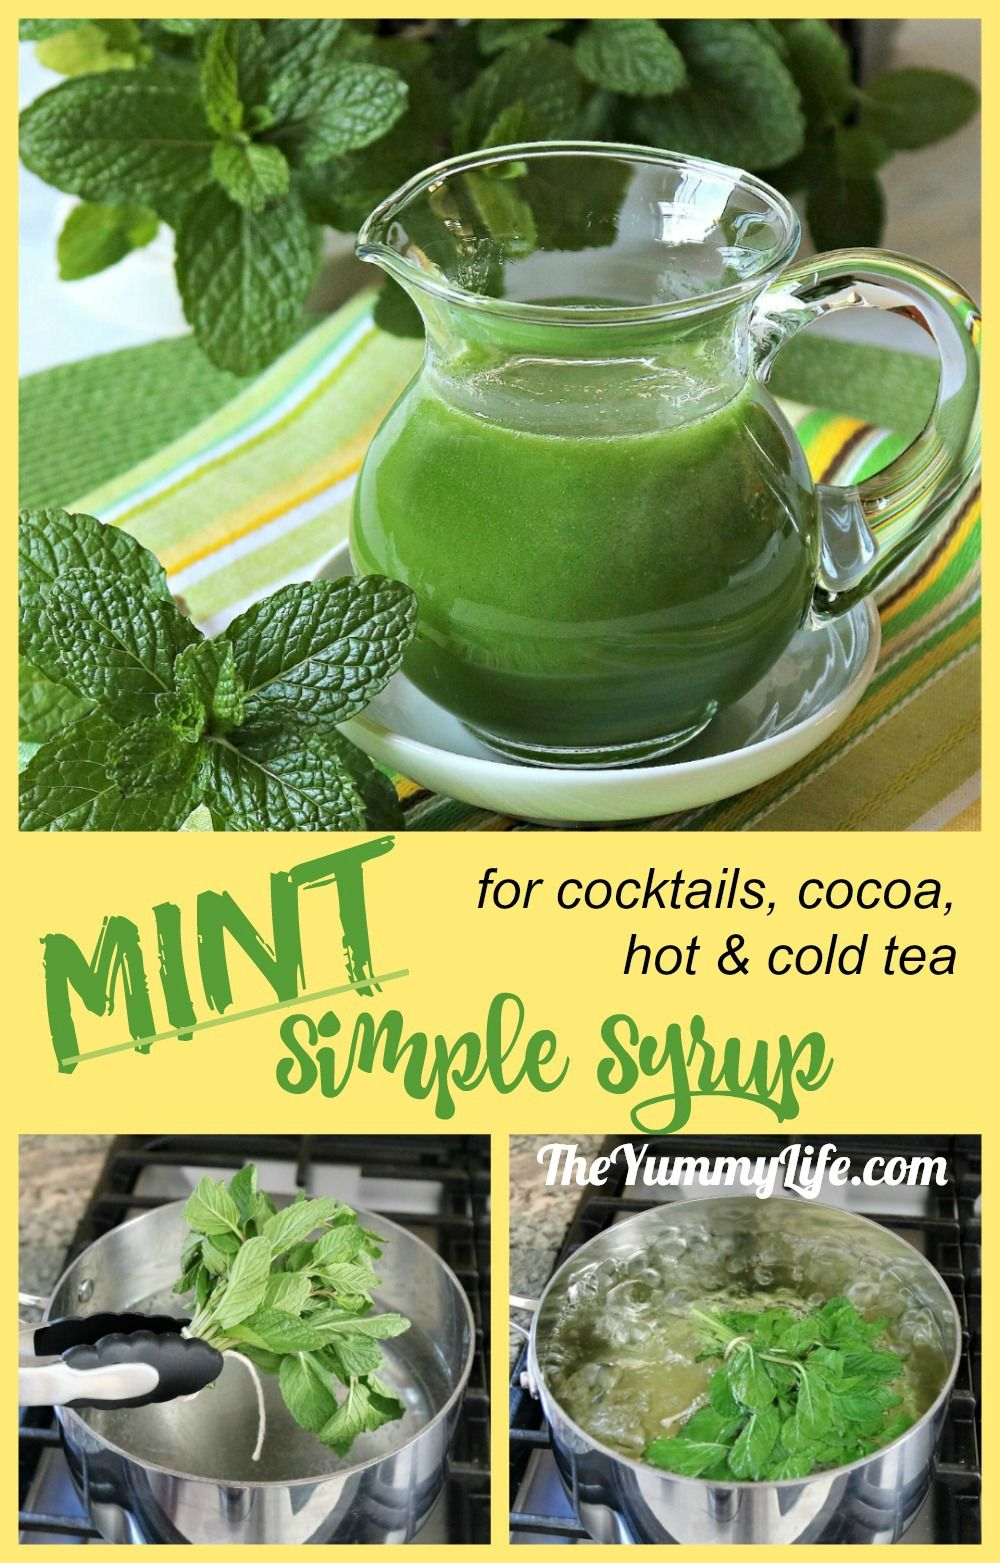 Mint Syrup is easy to make and adds instant, refreshing mint flavor to cocktails (like mojitos), hot cocoa, lemonade, sparkling water, and hot and cold tea. #theyummylife #mint #syrup #cocktails #icedtea #cocktailmixer